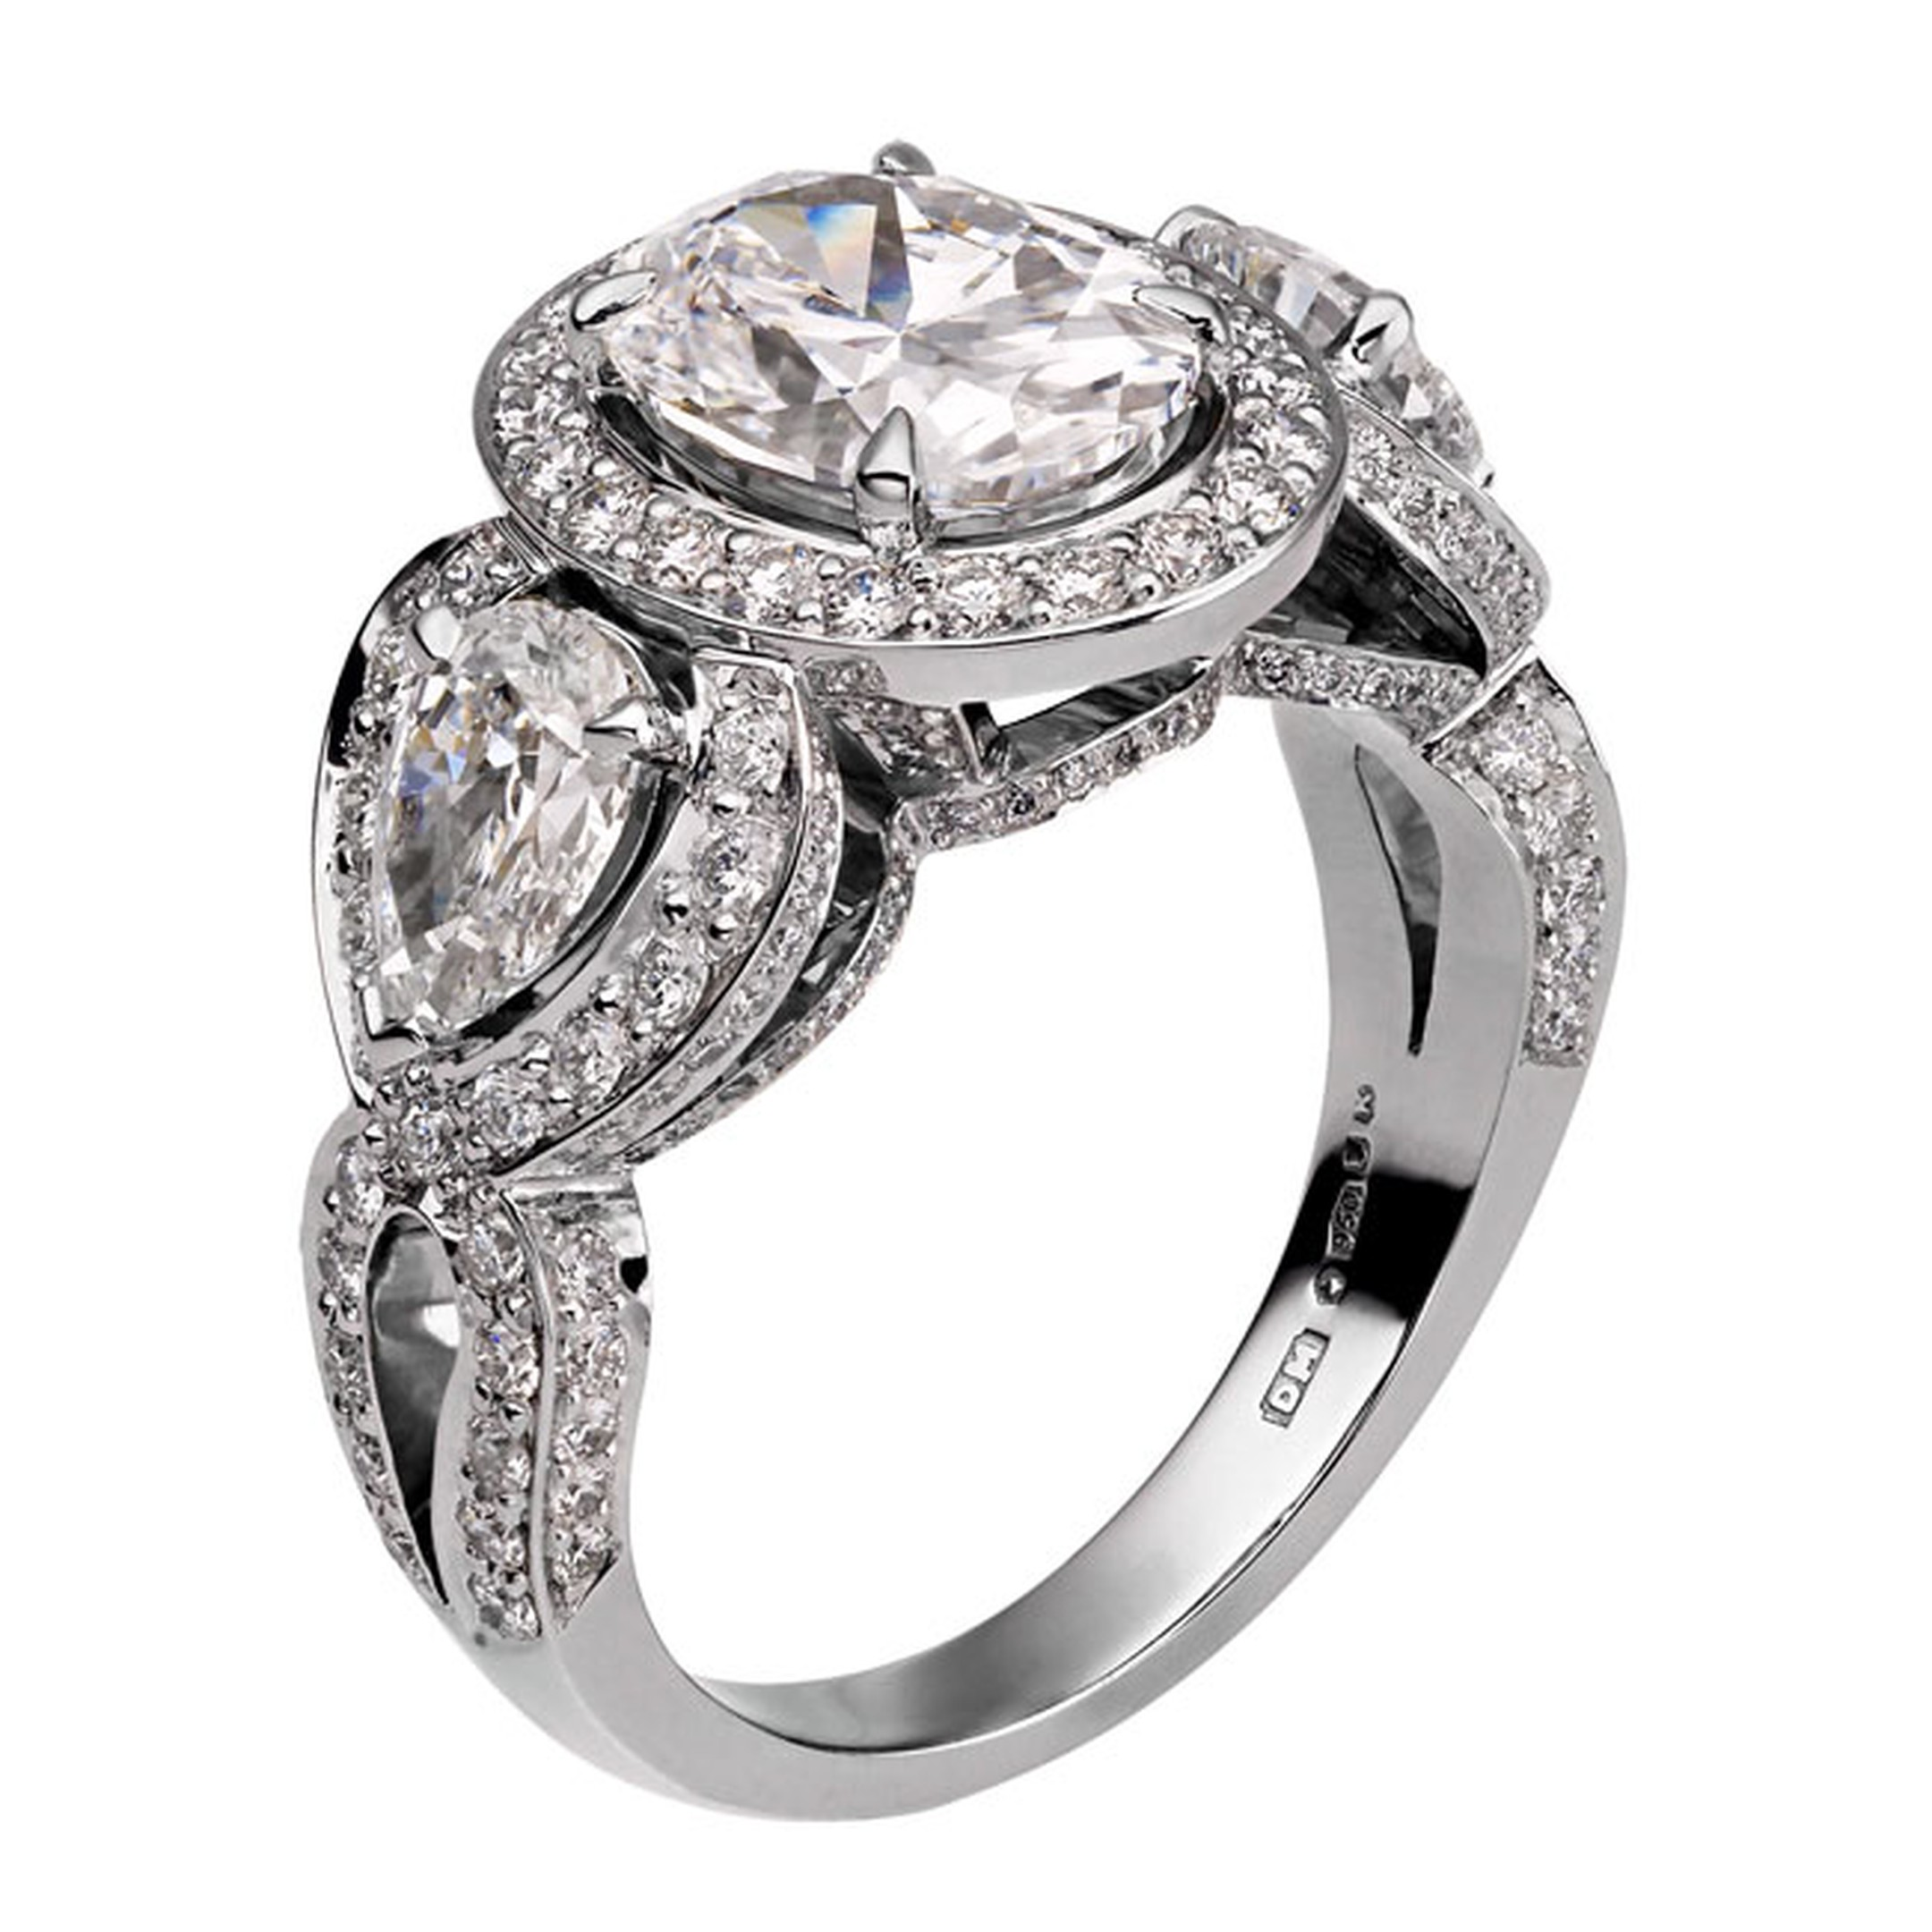 David Marshall Oval cut and pear shaped diamond ring_main